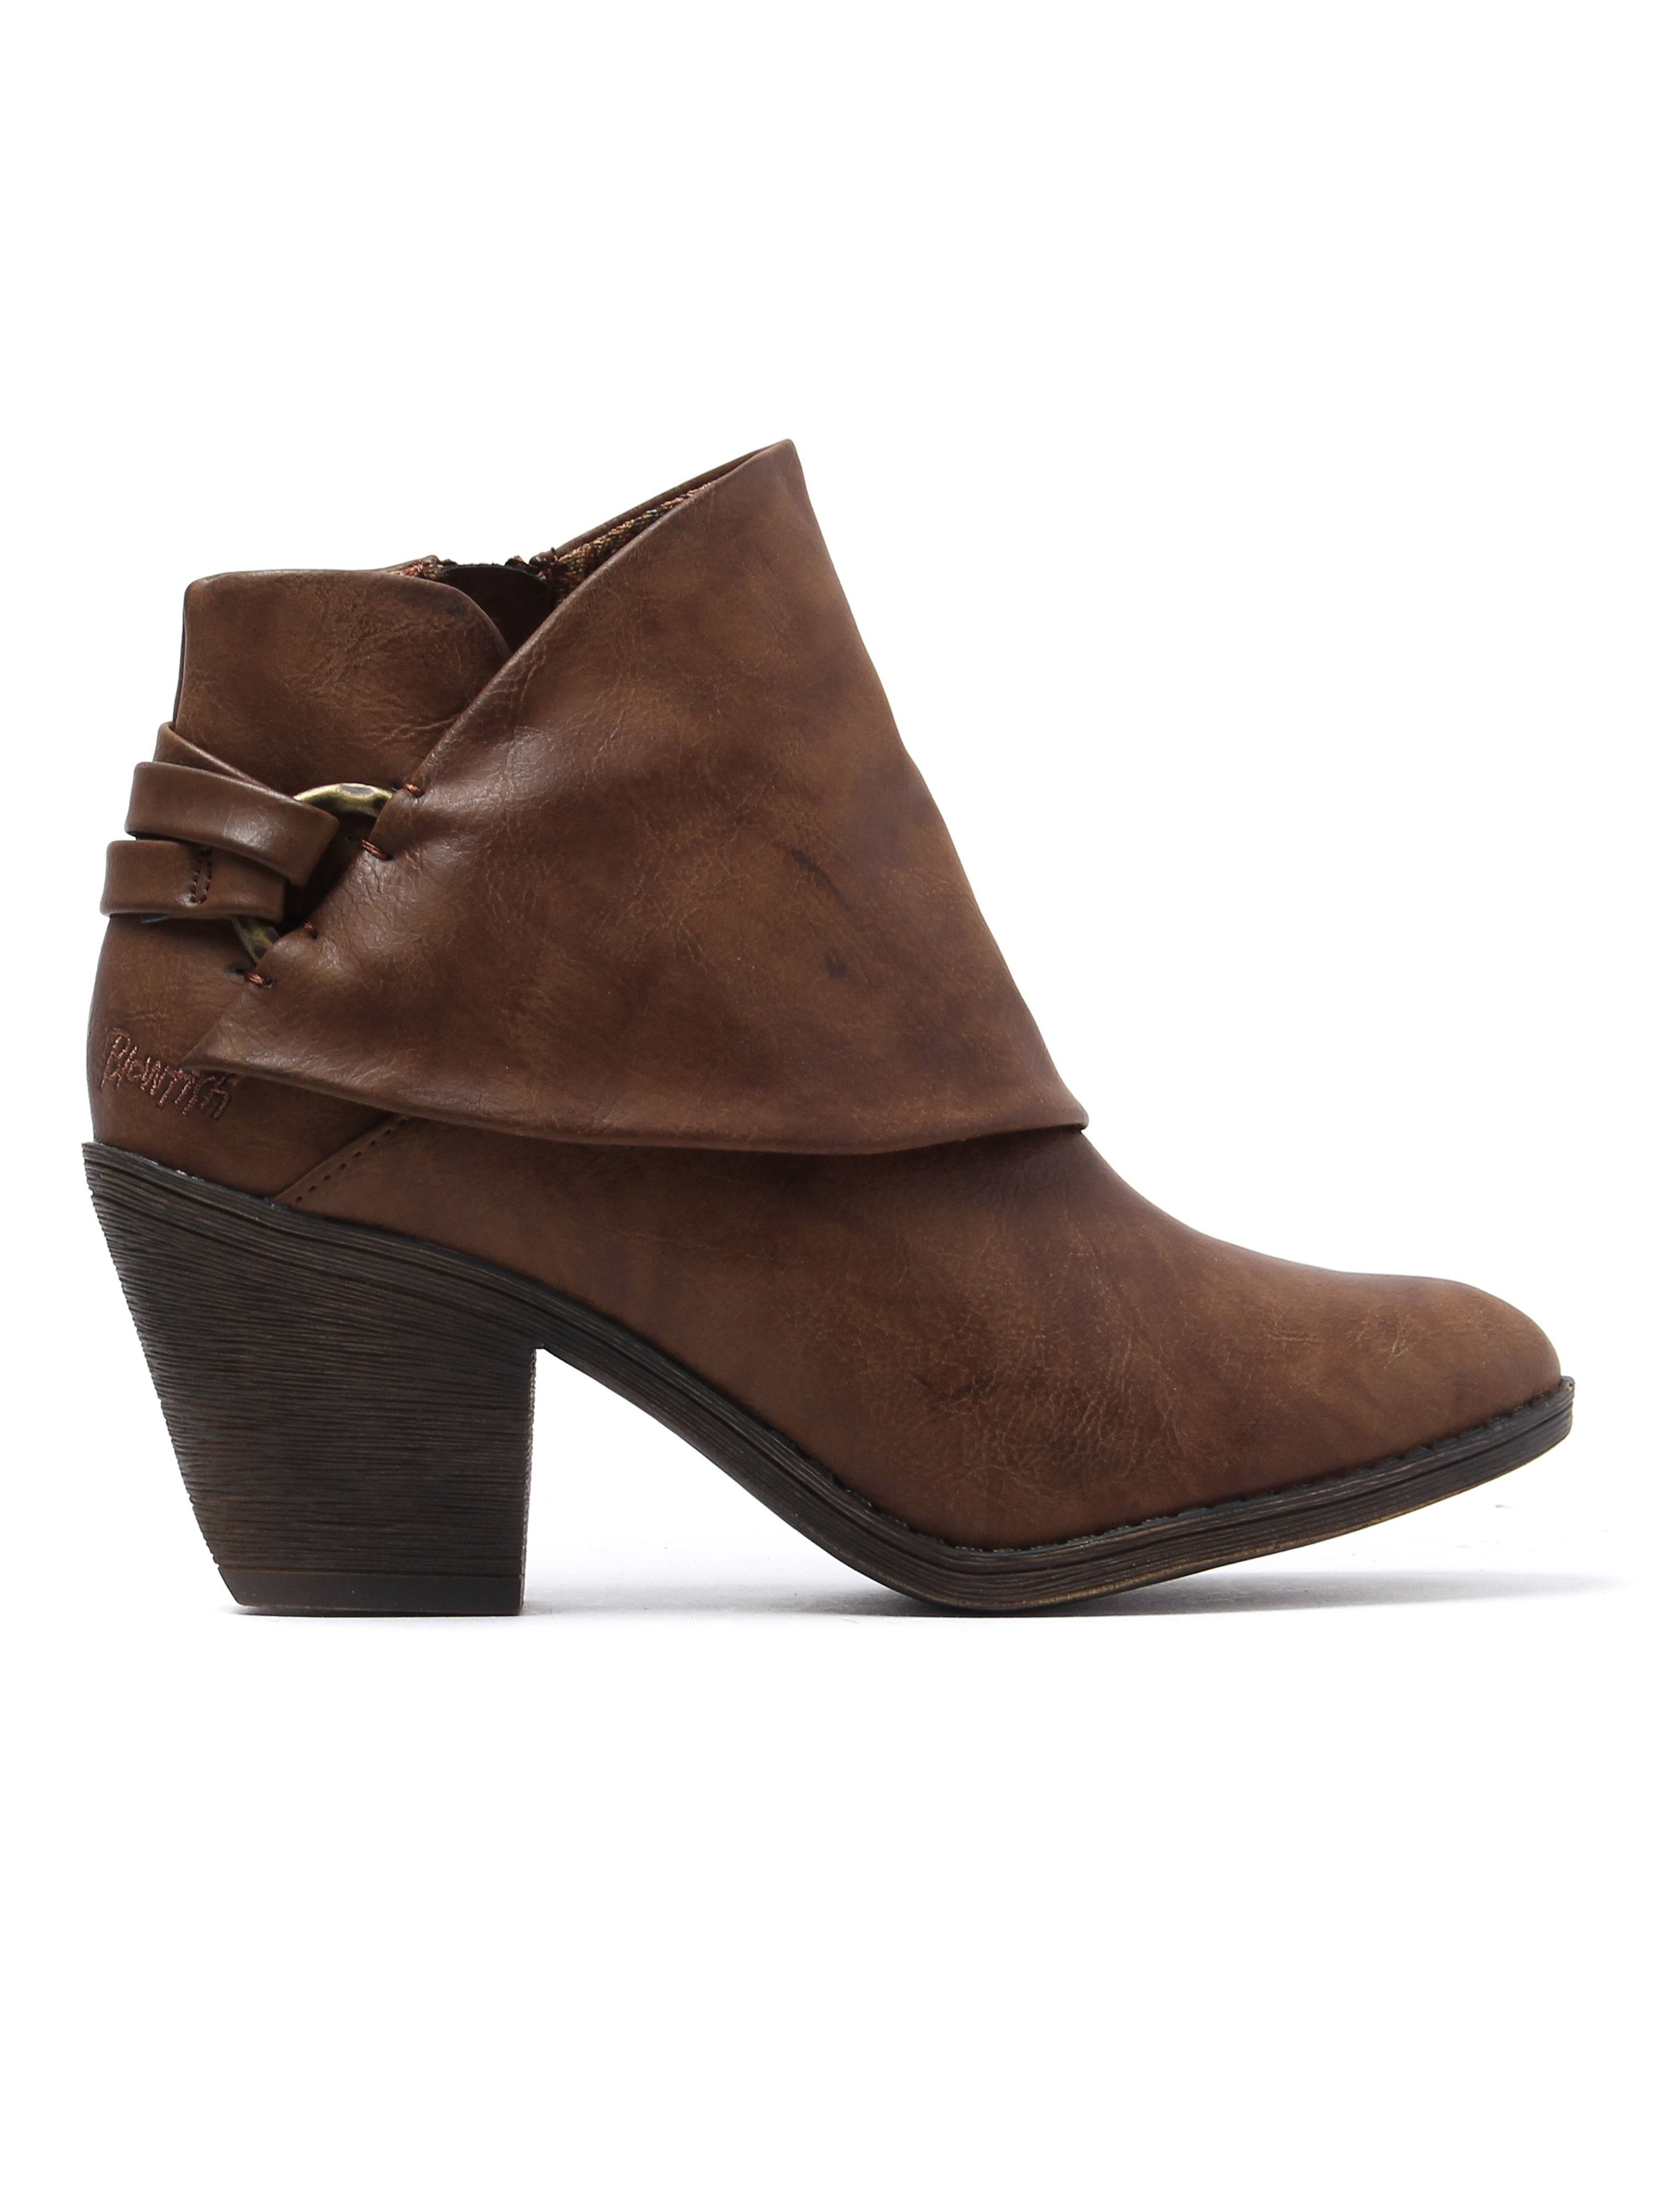 Blowfish Women's Super Duper Ankle Boots - Whiskey Lonestar